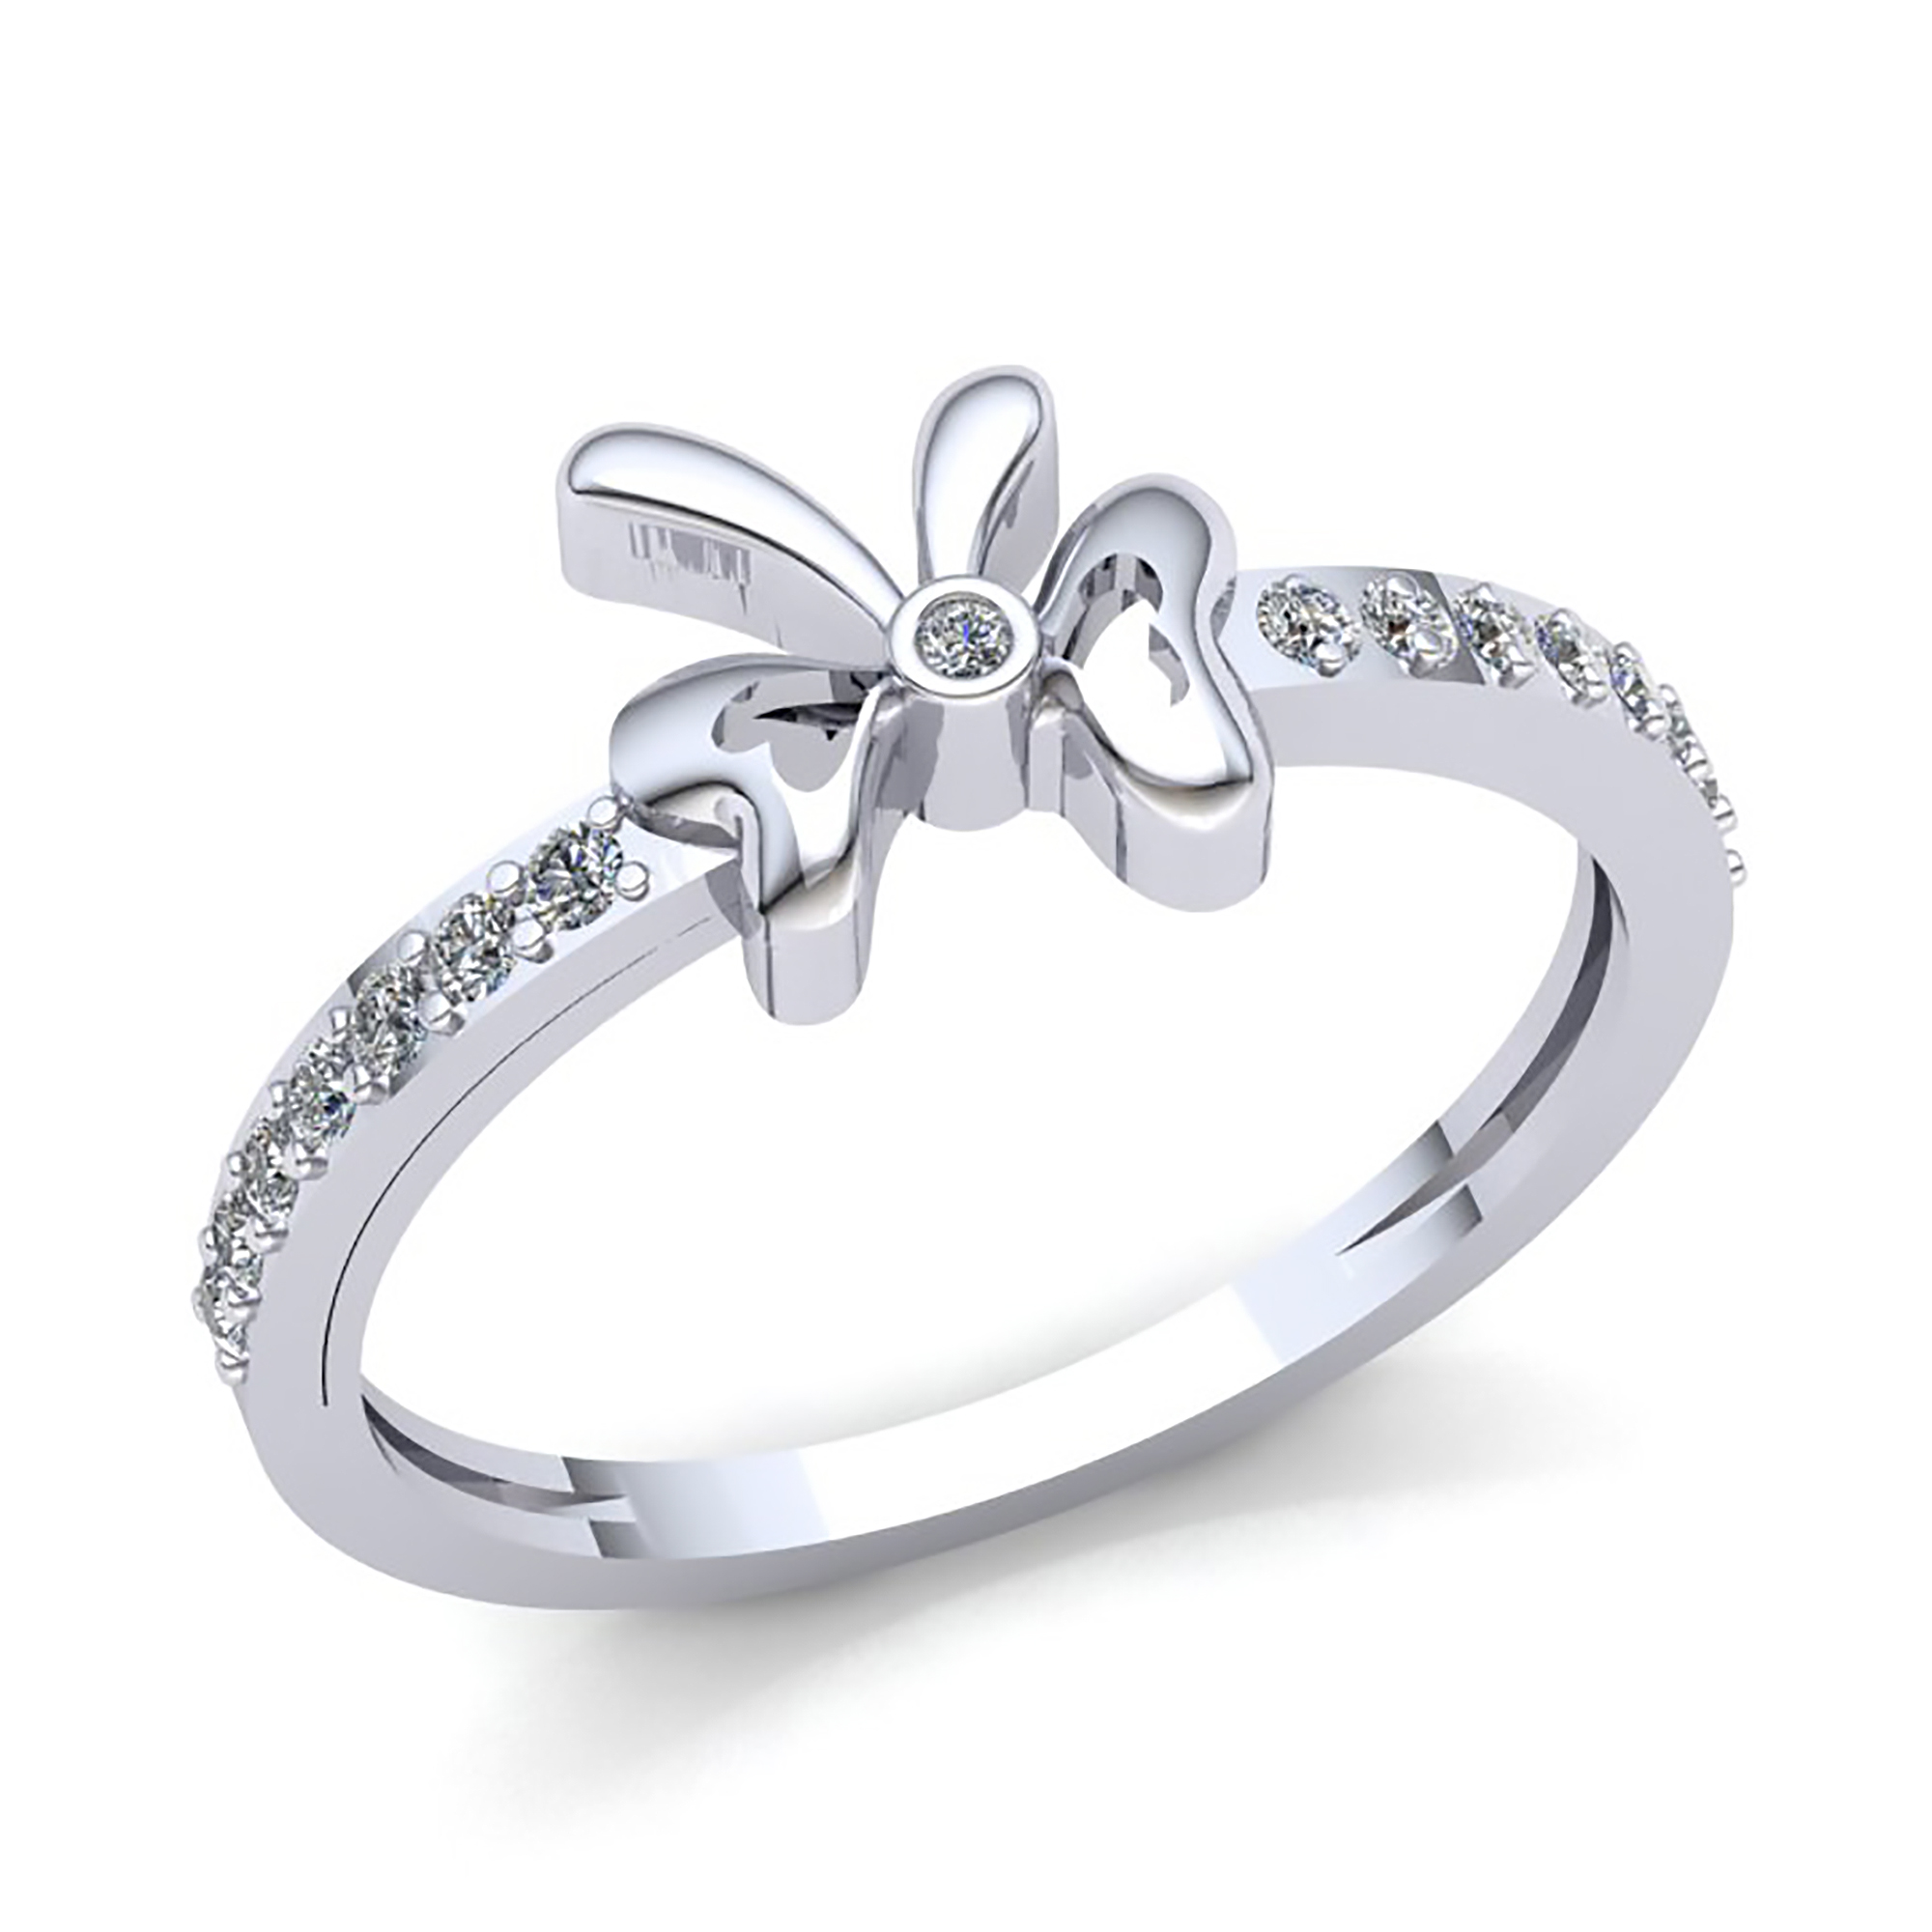 b4f121915 Details about 0.15carat Round Brilliant Cut Diamond Womens Bridal Bow Right  Hand Ring 10K Gold